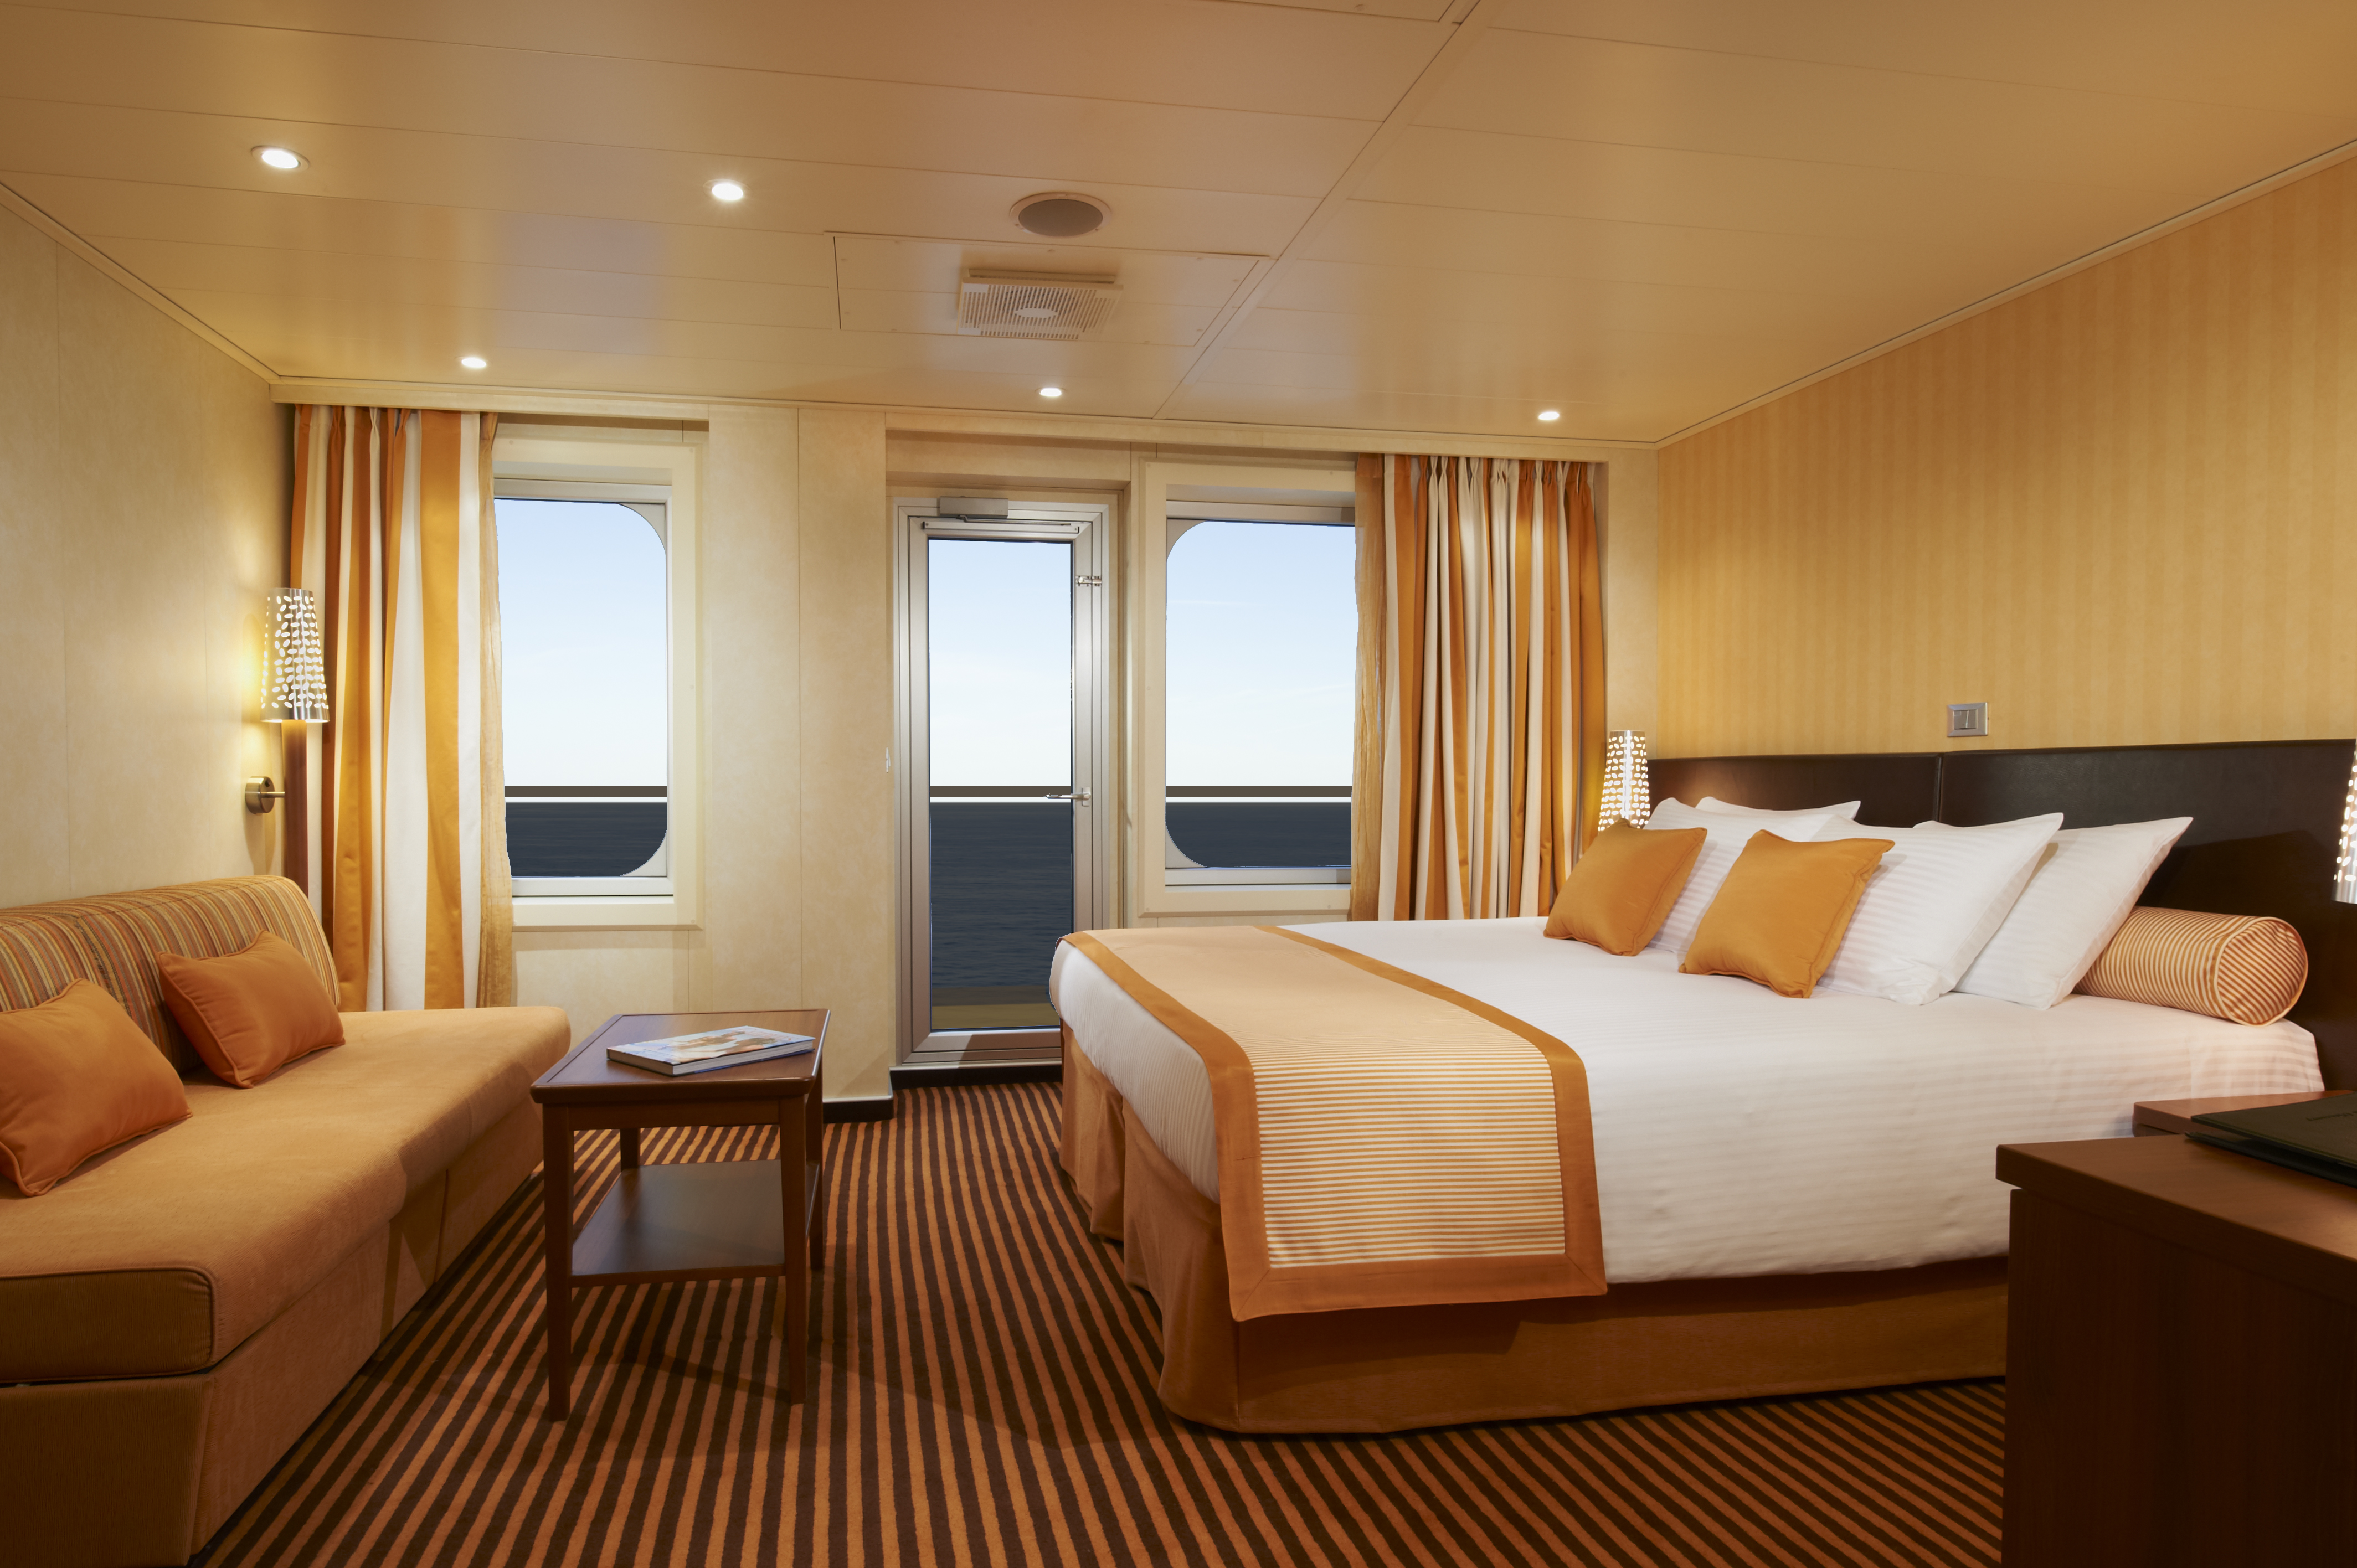 Carnival Breeze Staterooms Carnival Breeze Cruise Ship